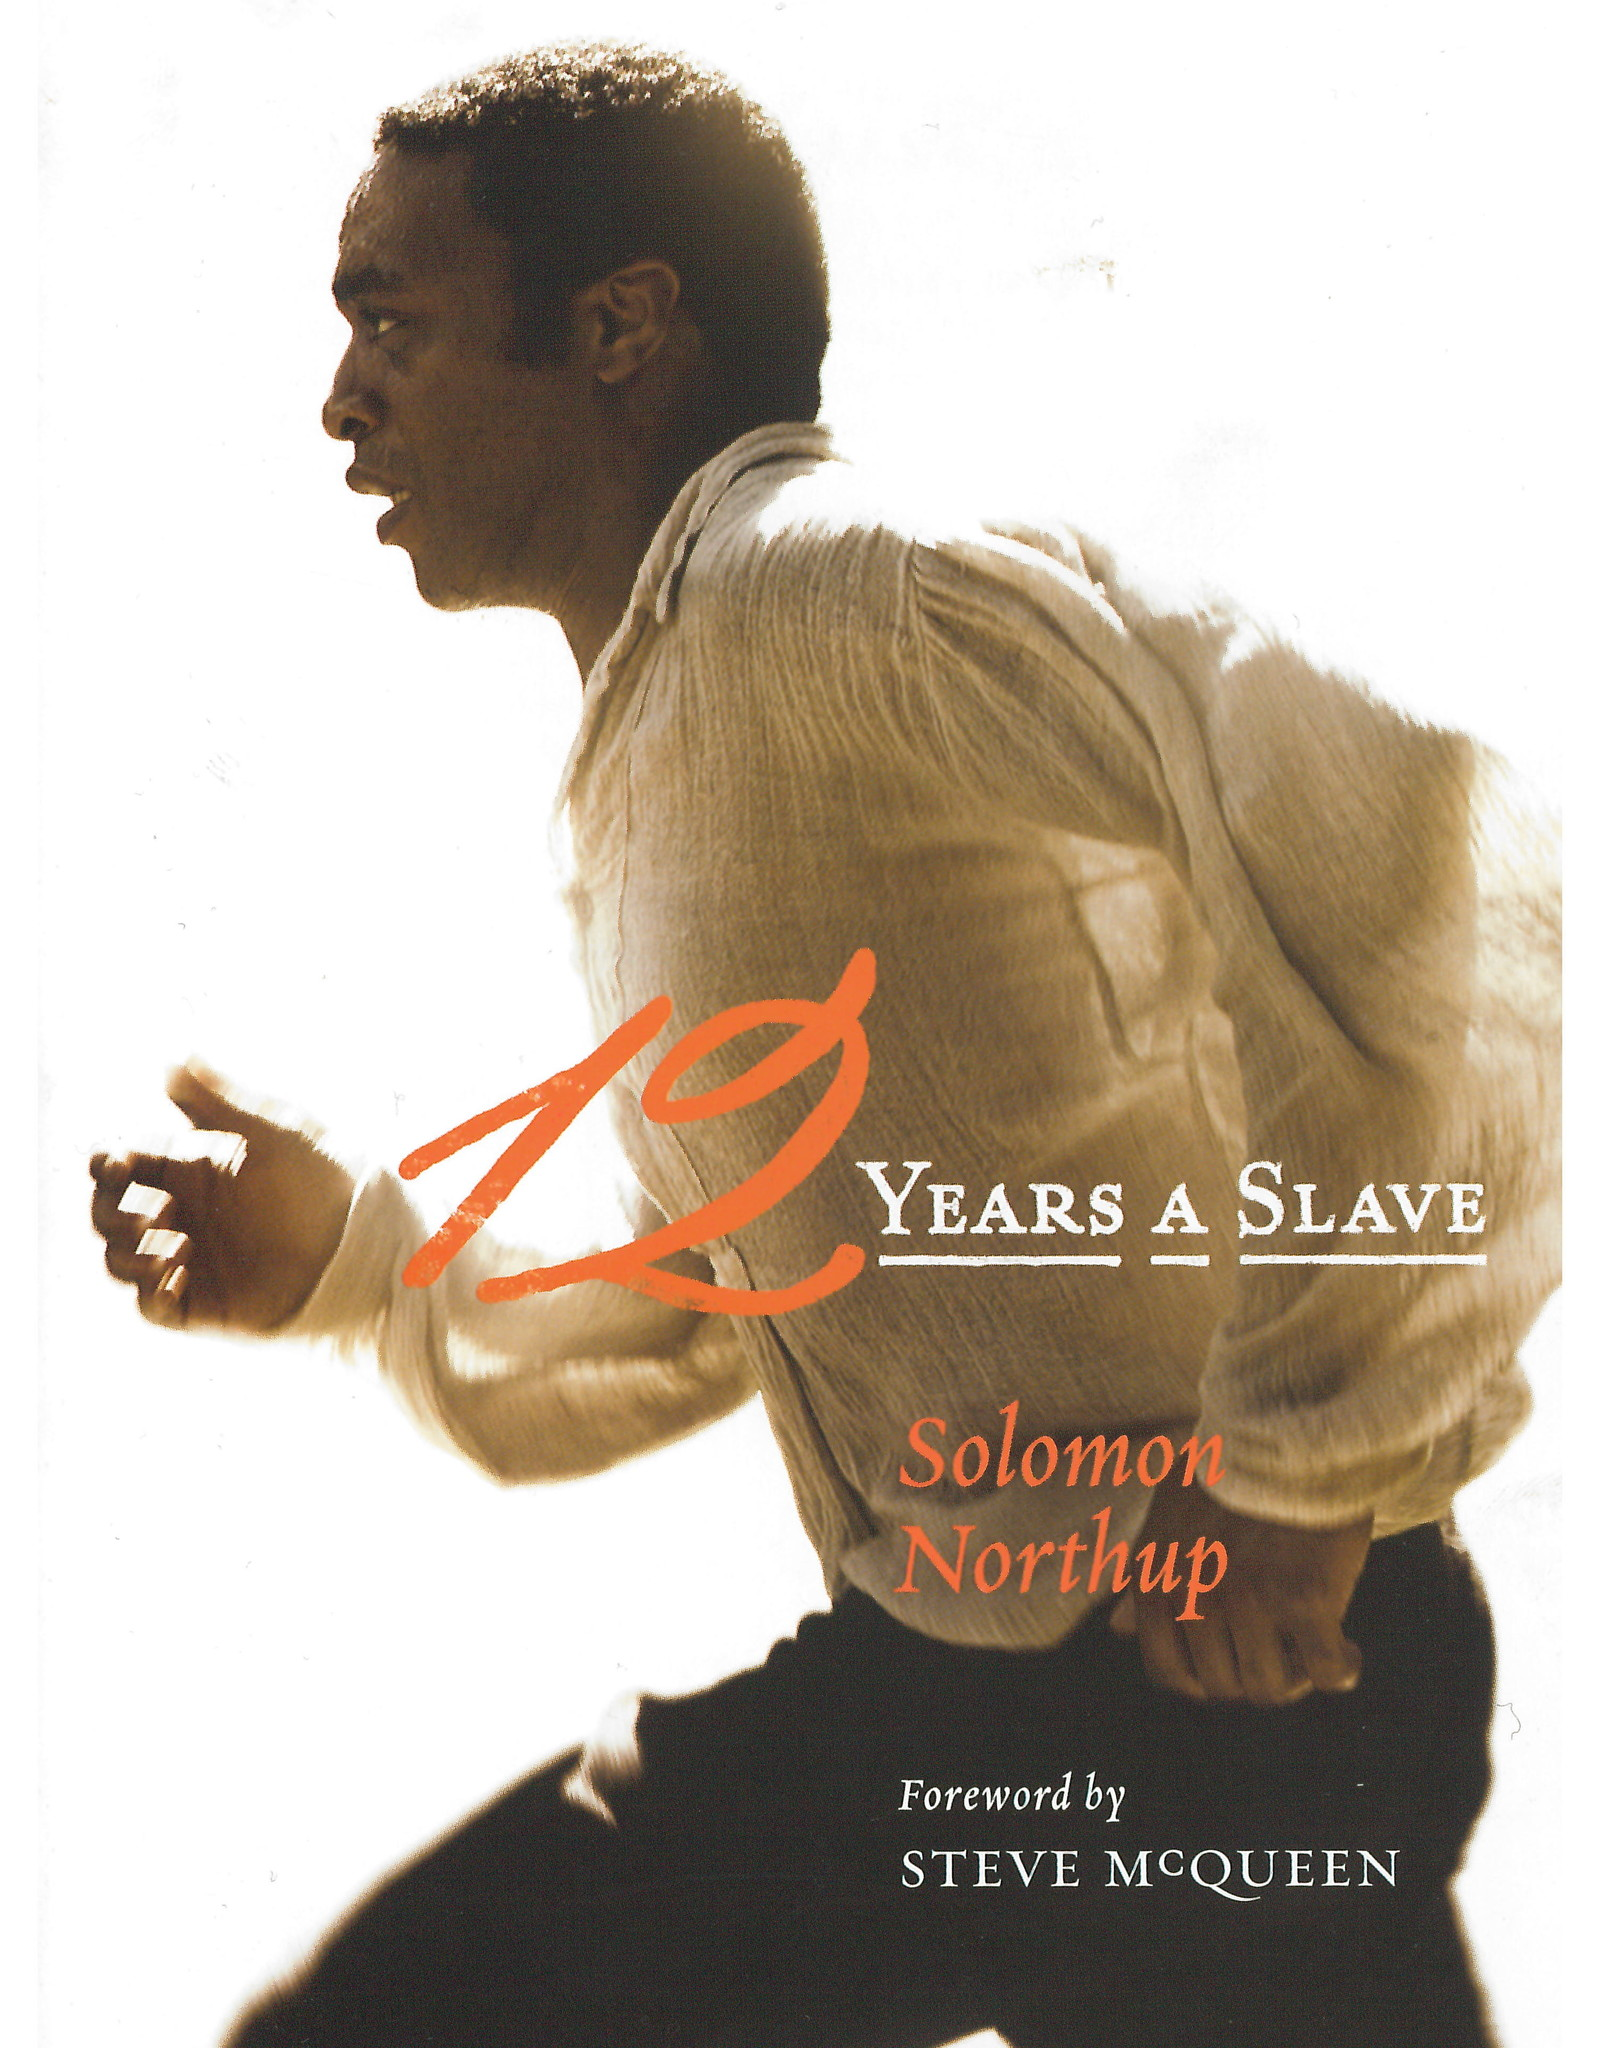 12 Years a Slave / Solomon Northup